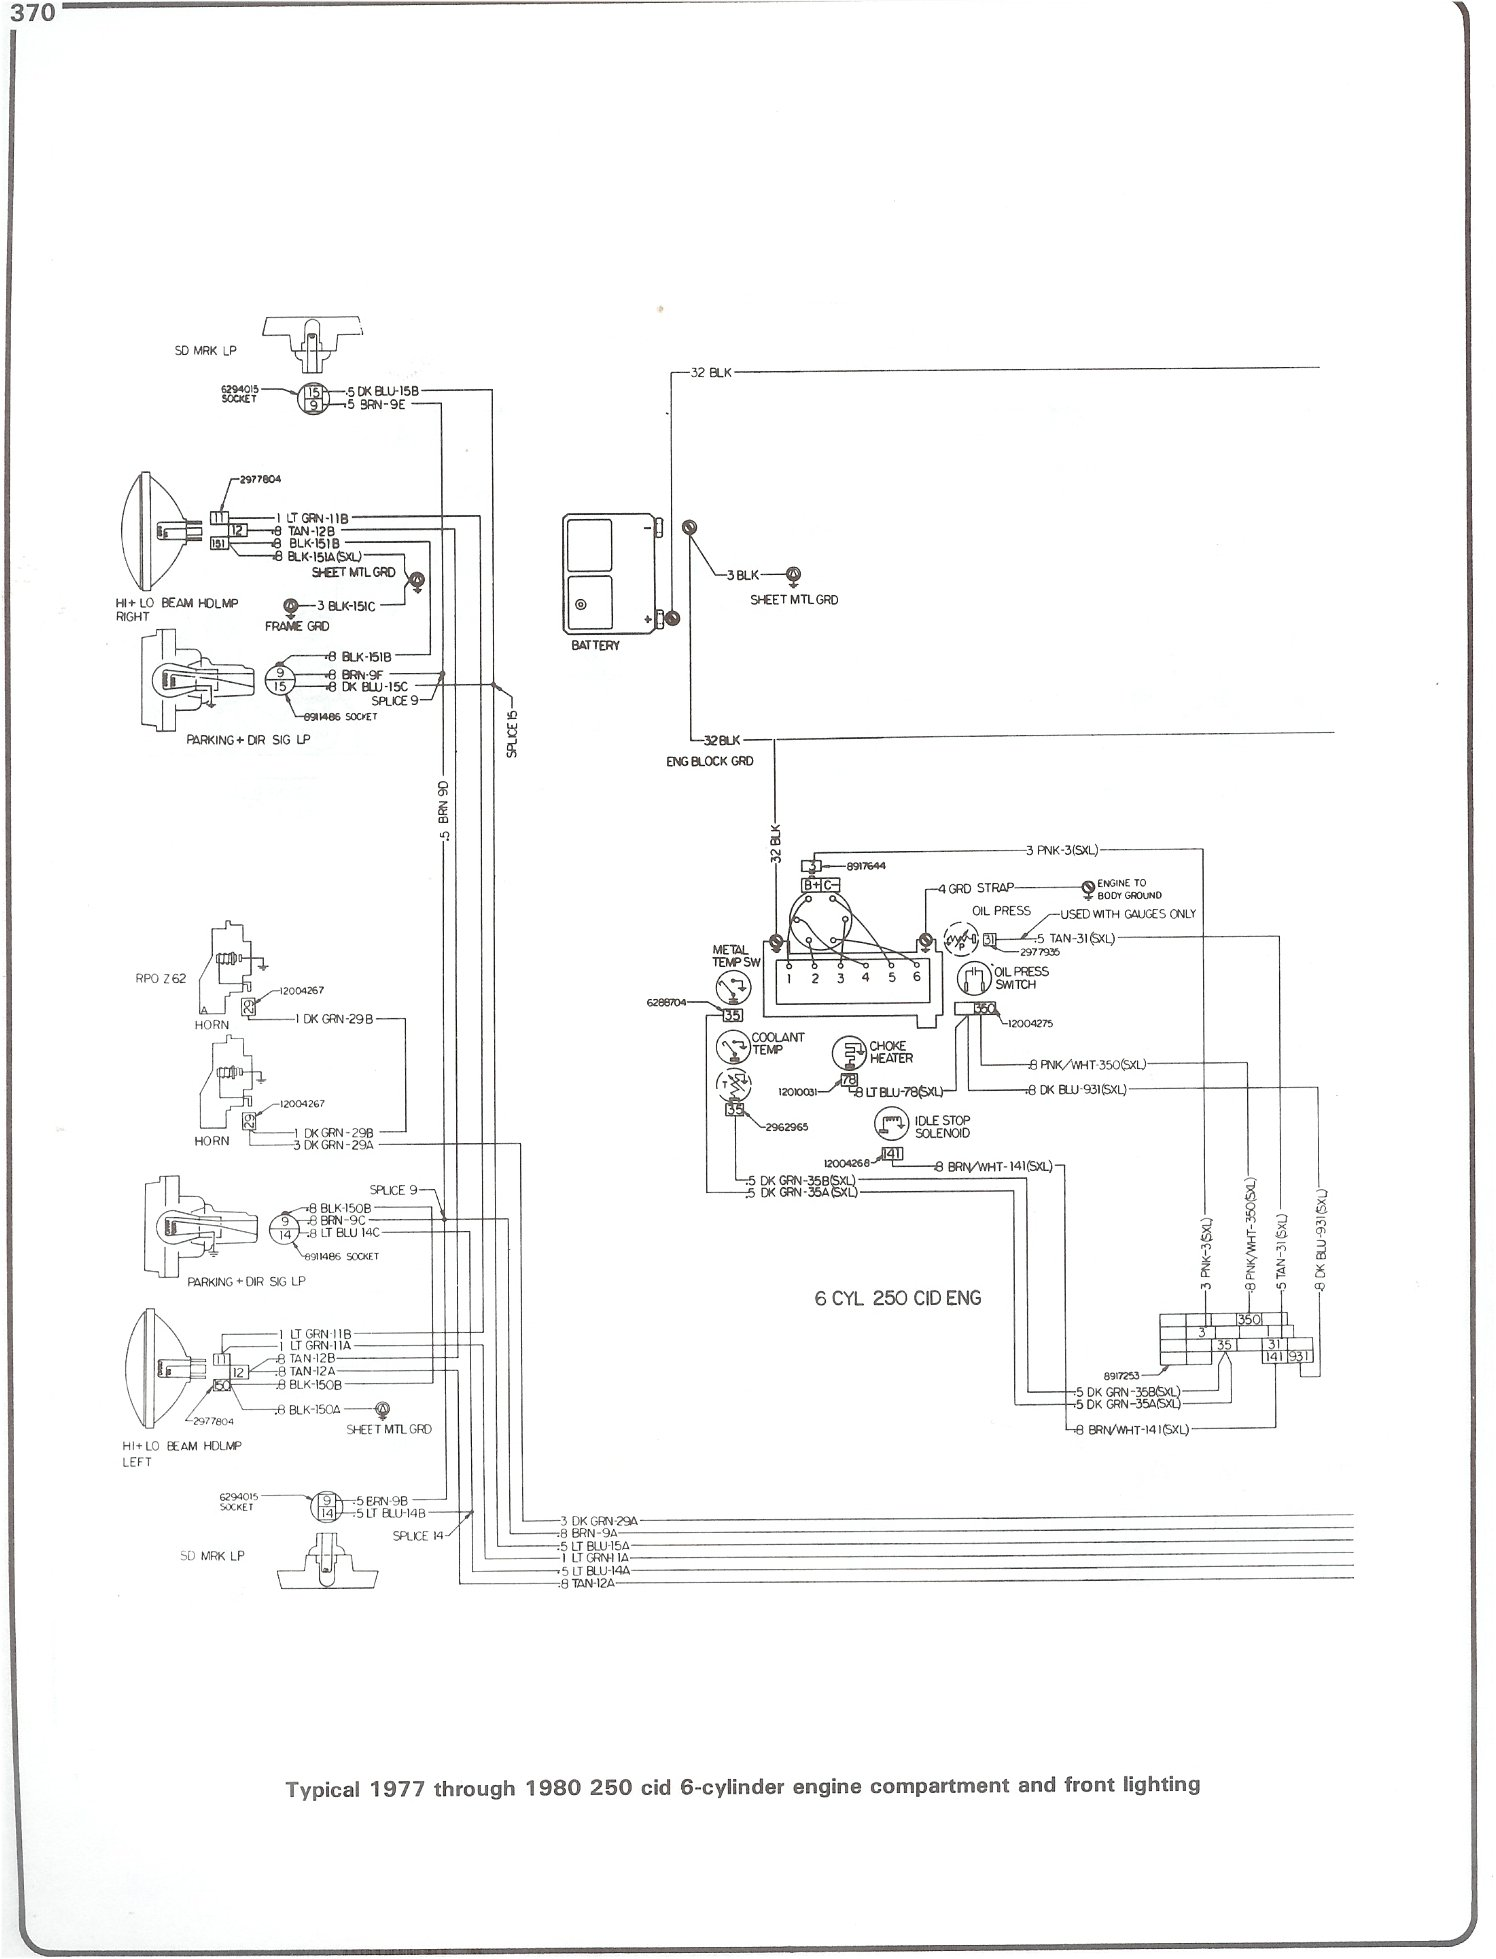 1985 K10 Wiring Diagram Engine Product Diagrams Hei Distributor Further 1986 Chevy C10 Fuel Tank Rh Insurapro Co Toyota Honda